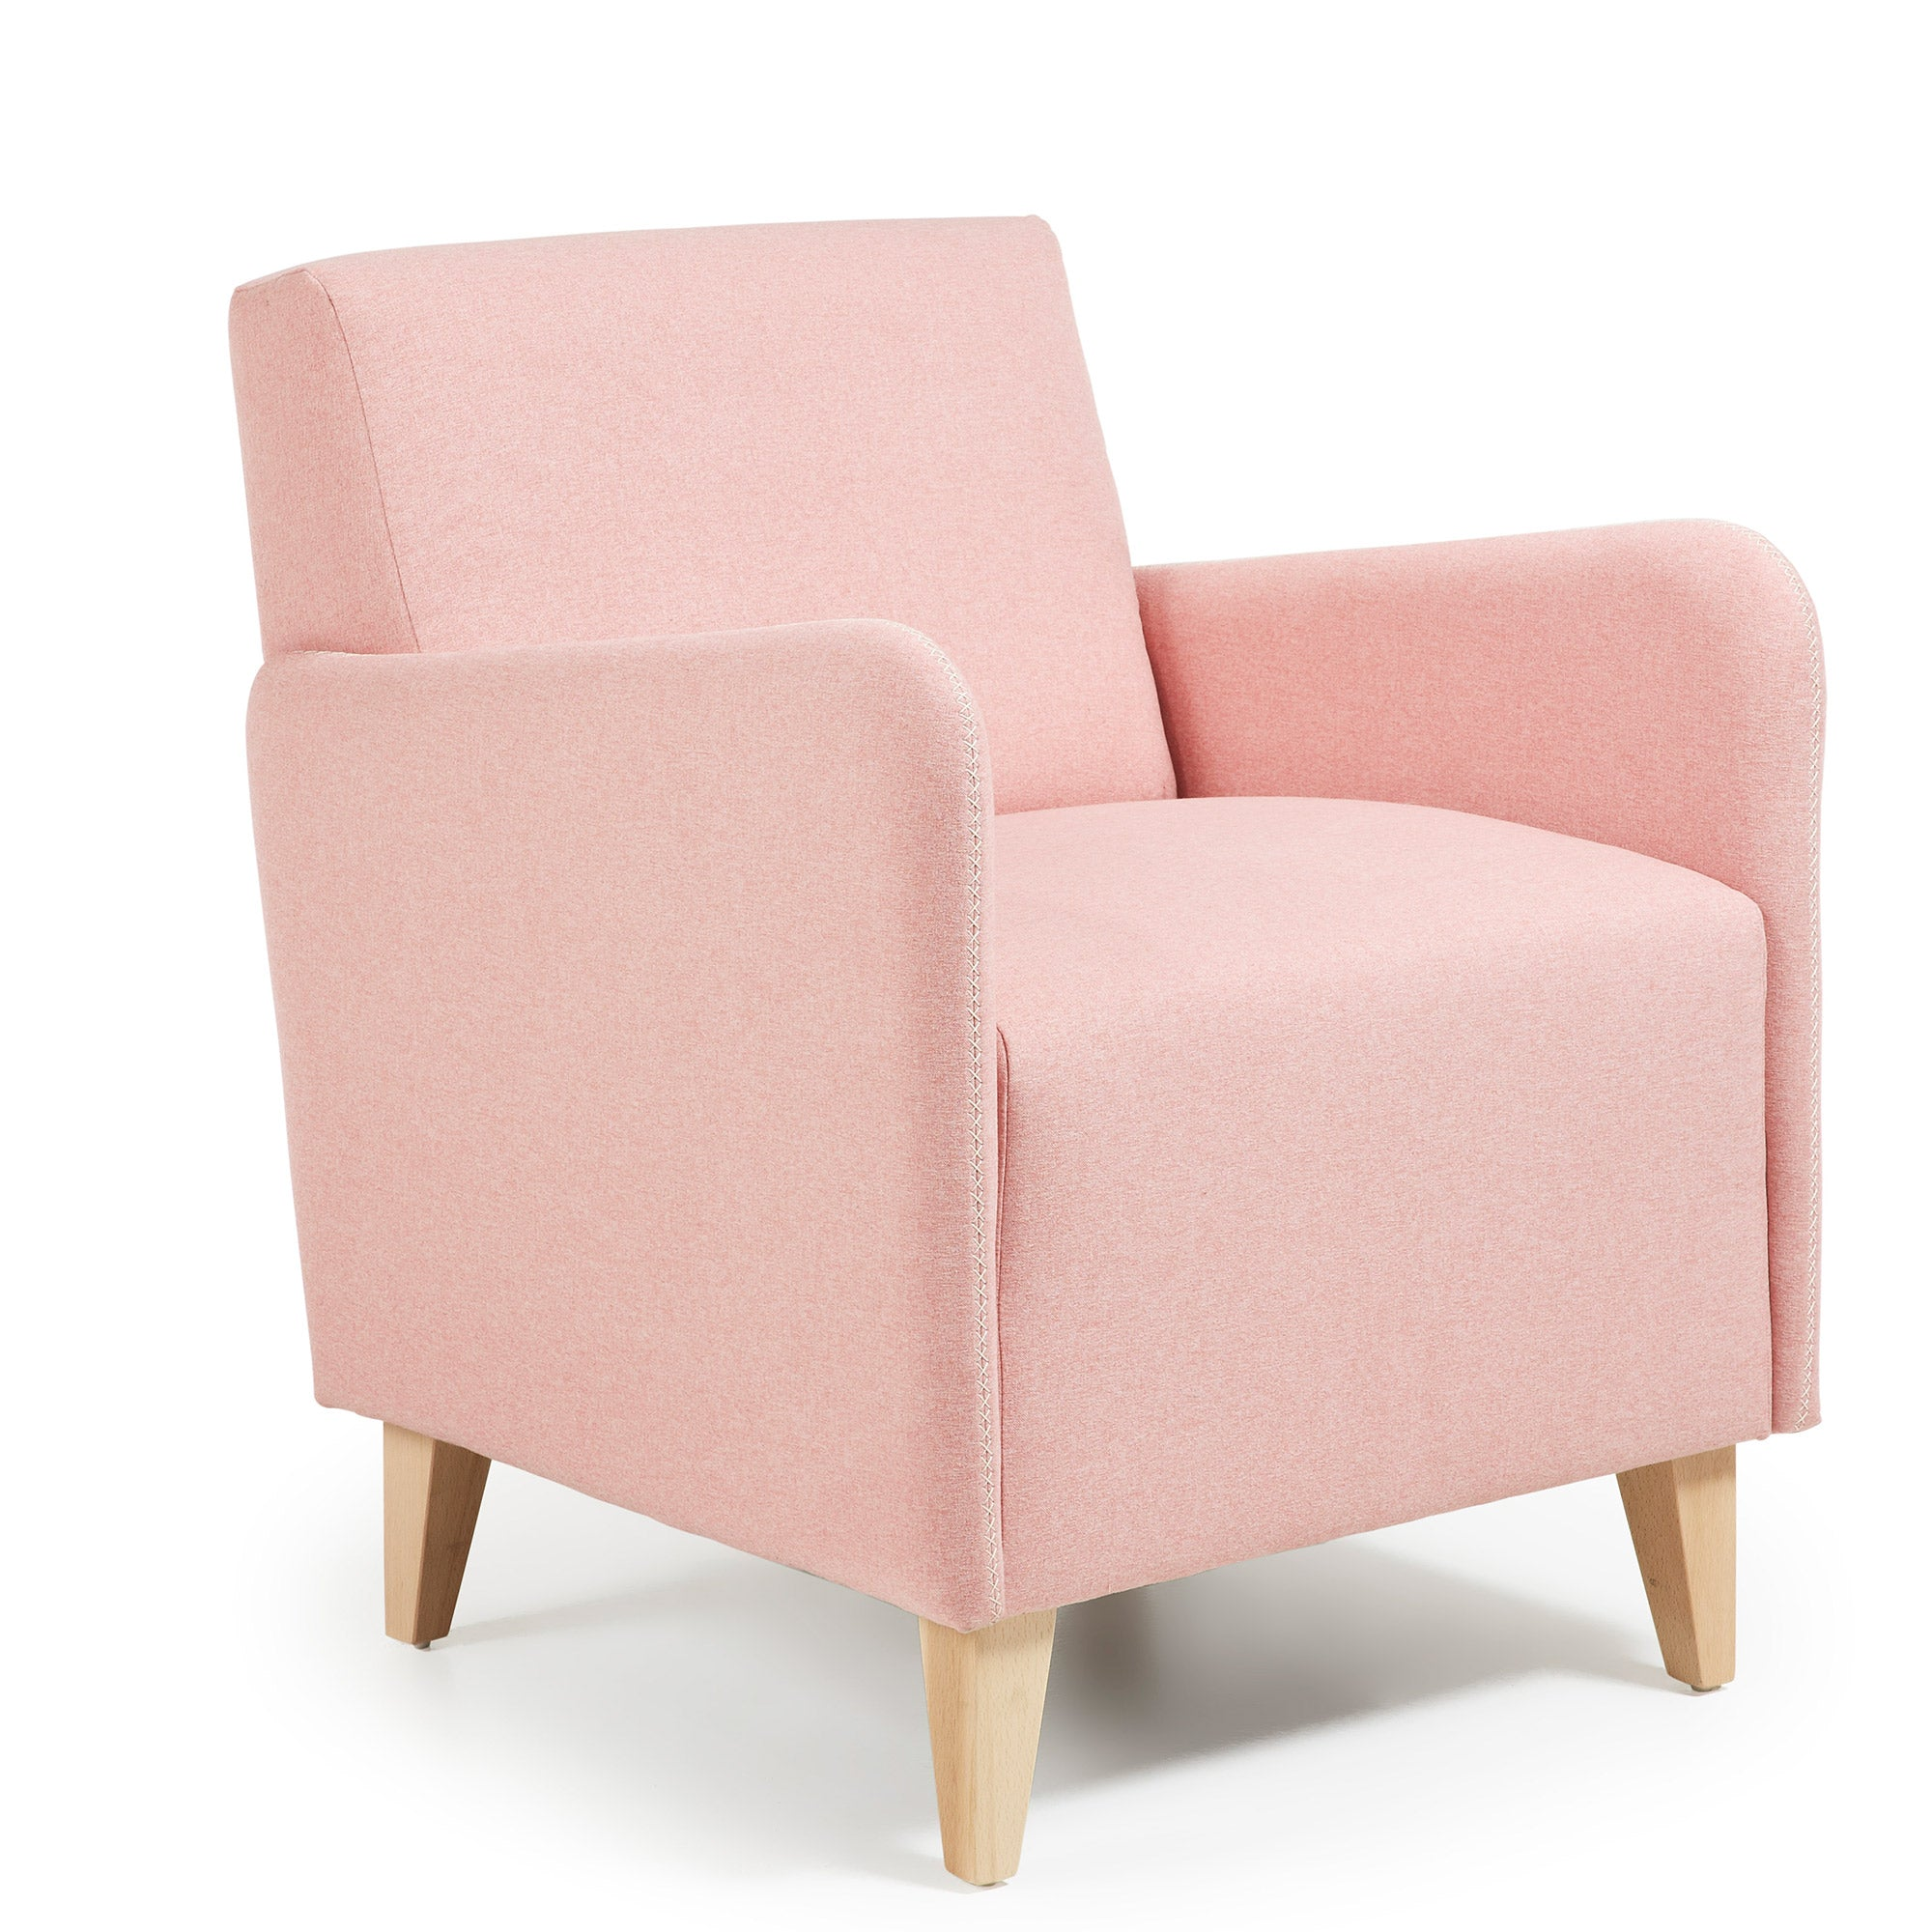 Caprinha Armchair in Pink fabric, Armchair - Home-Buy Interiors